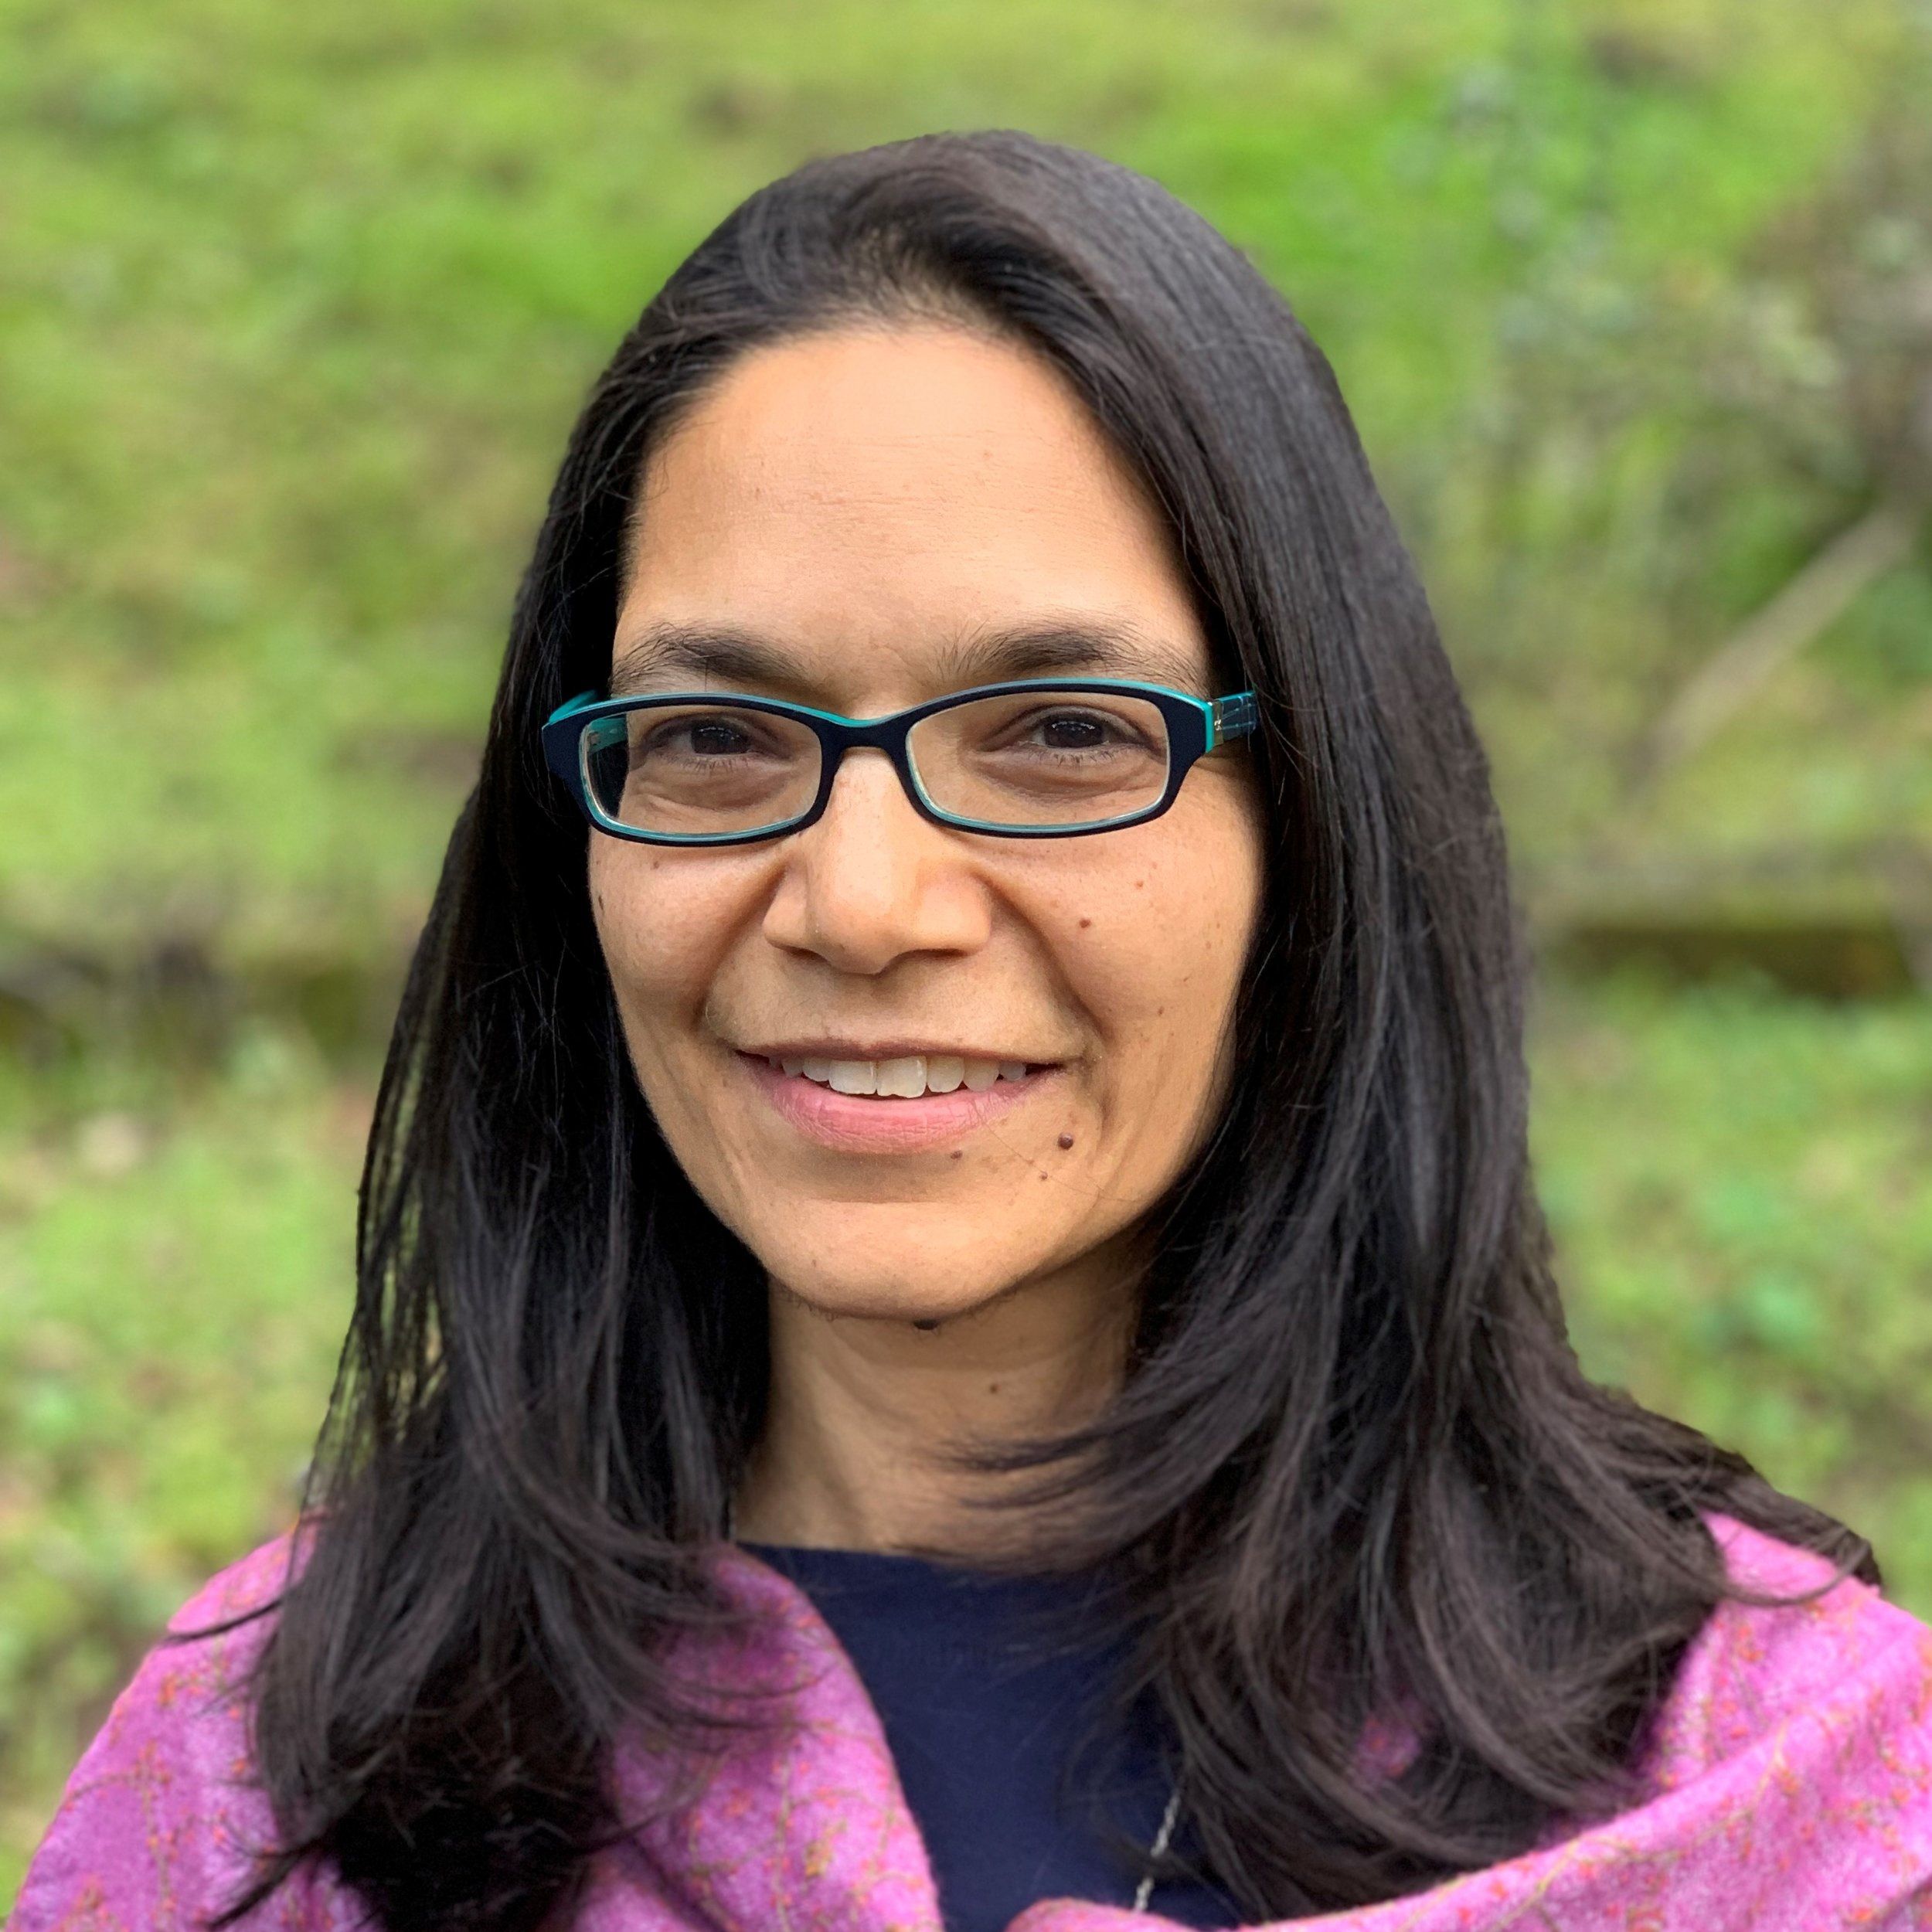 """Shalini AgrawalPathways to Equity - """"Leading from the heart is leading with generosity, community and radical love.""""LinkedIn"""